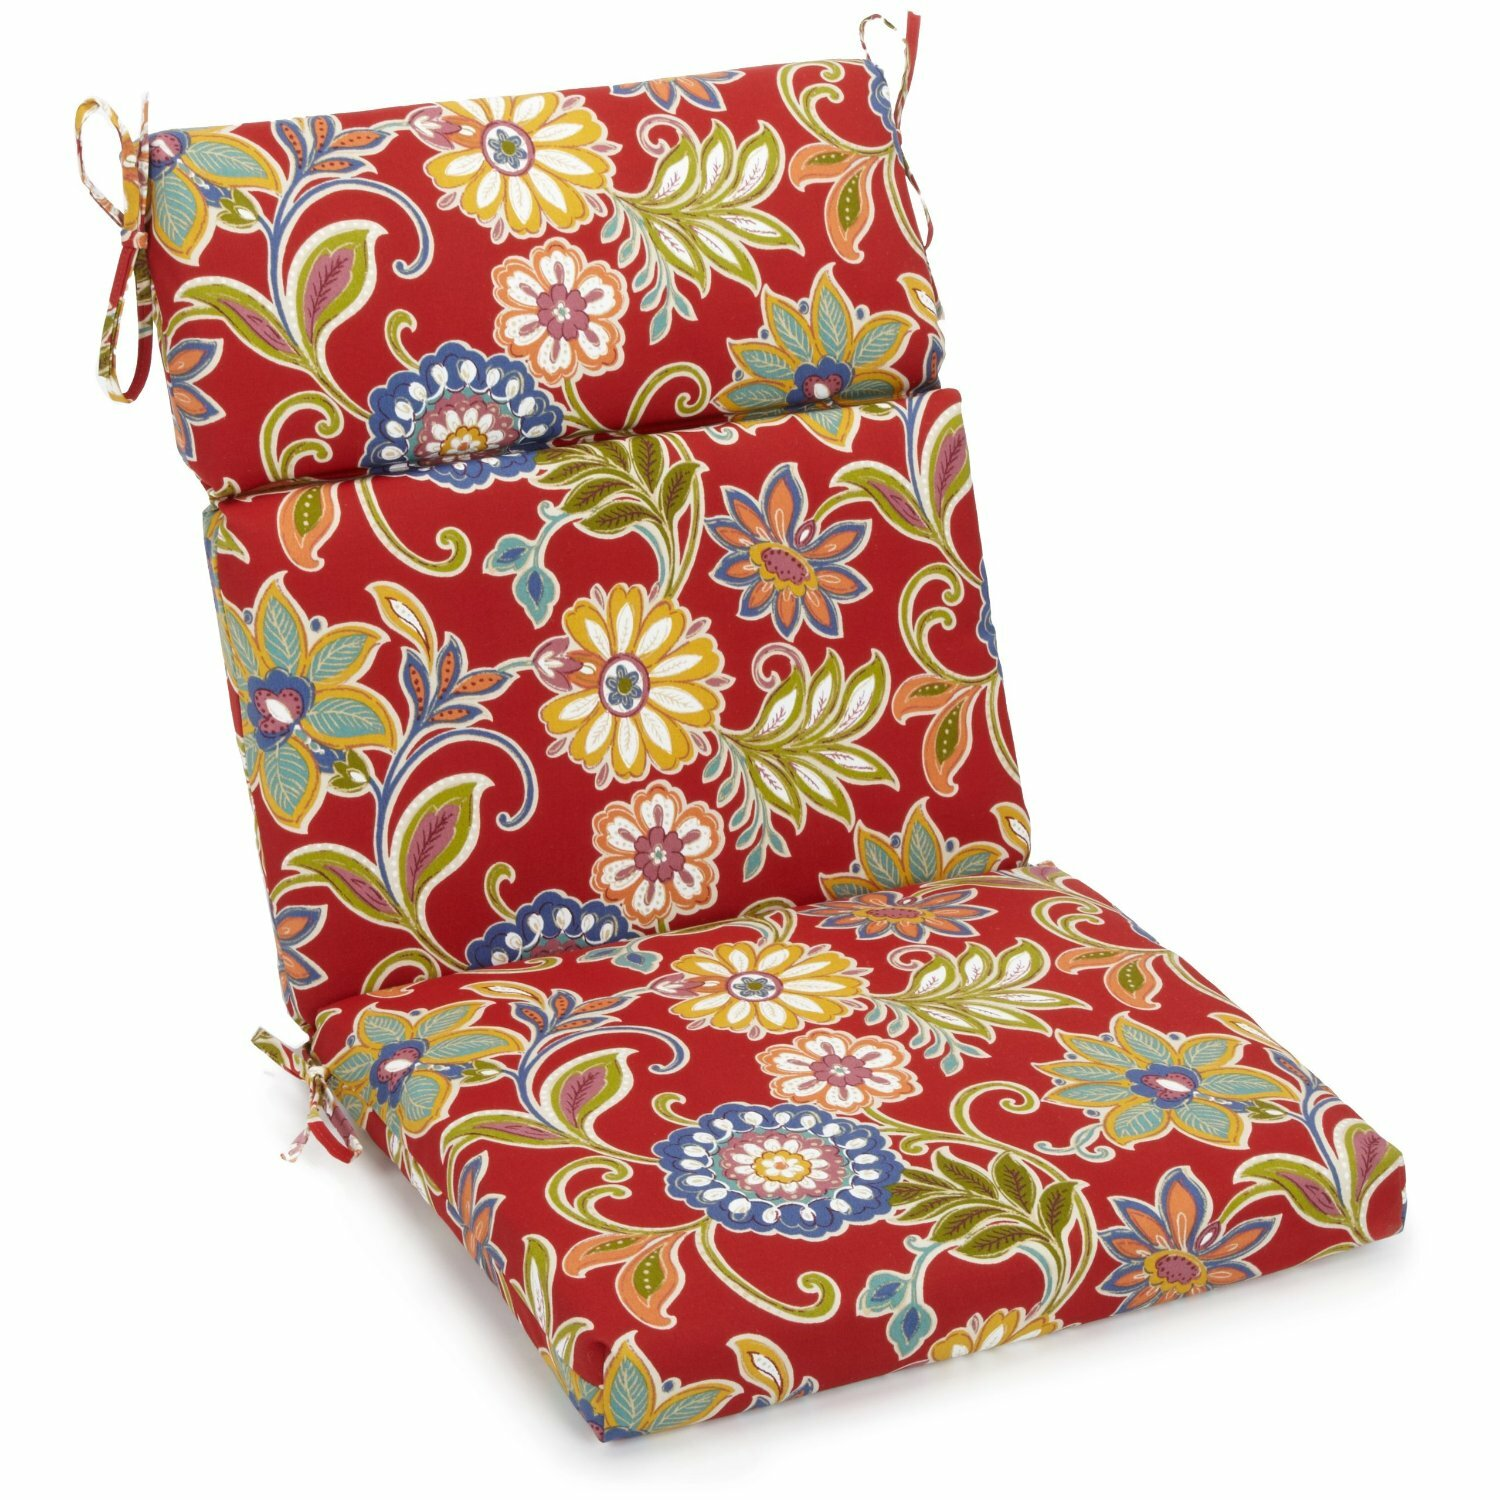 Lounge chairs for bad backs - Lounge Chairs For Bad Backs 3 Lounge Chairs For Bad Backs